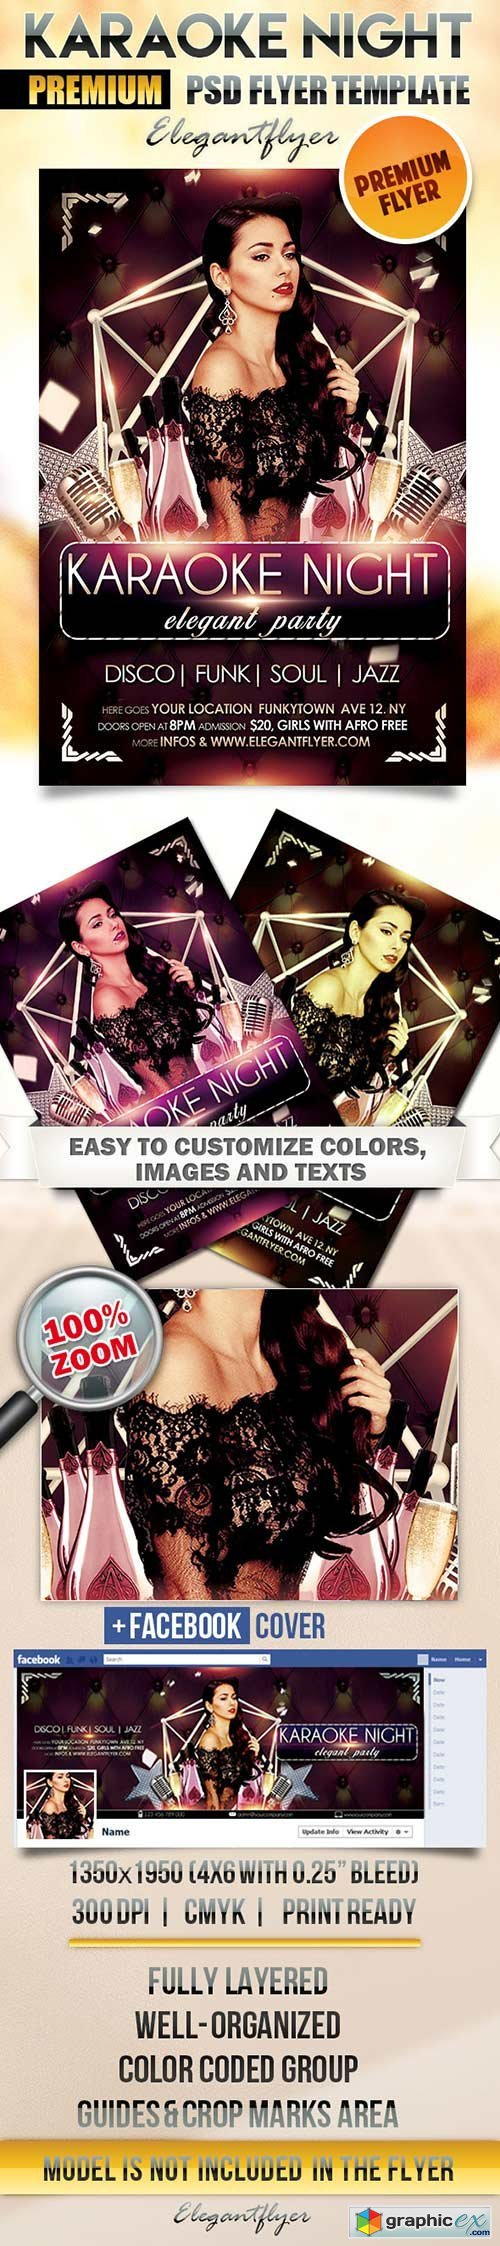 Karaoke Night Flyer PSD Template + Facebook Cover